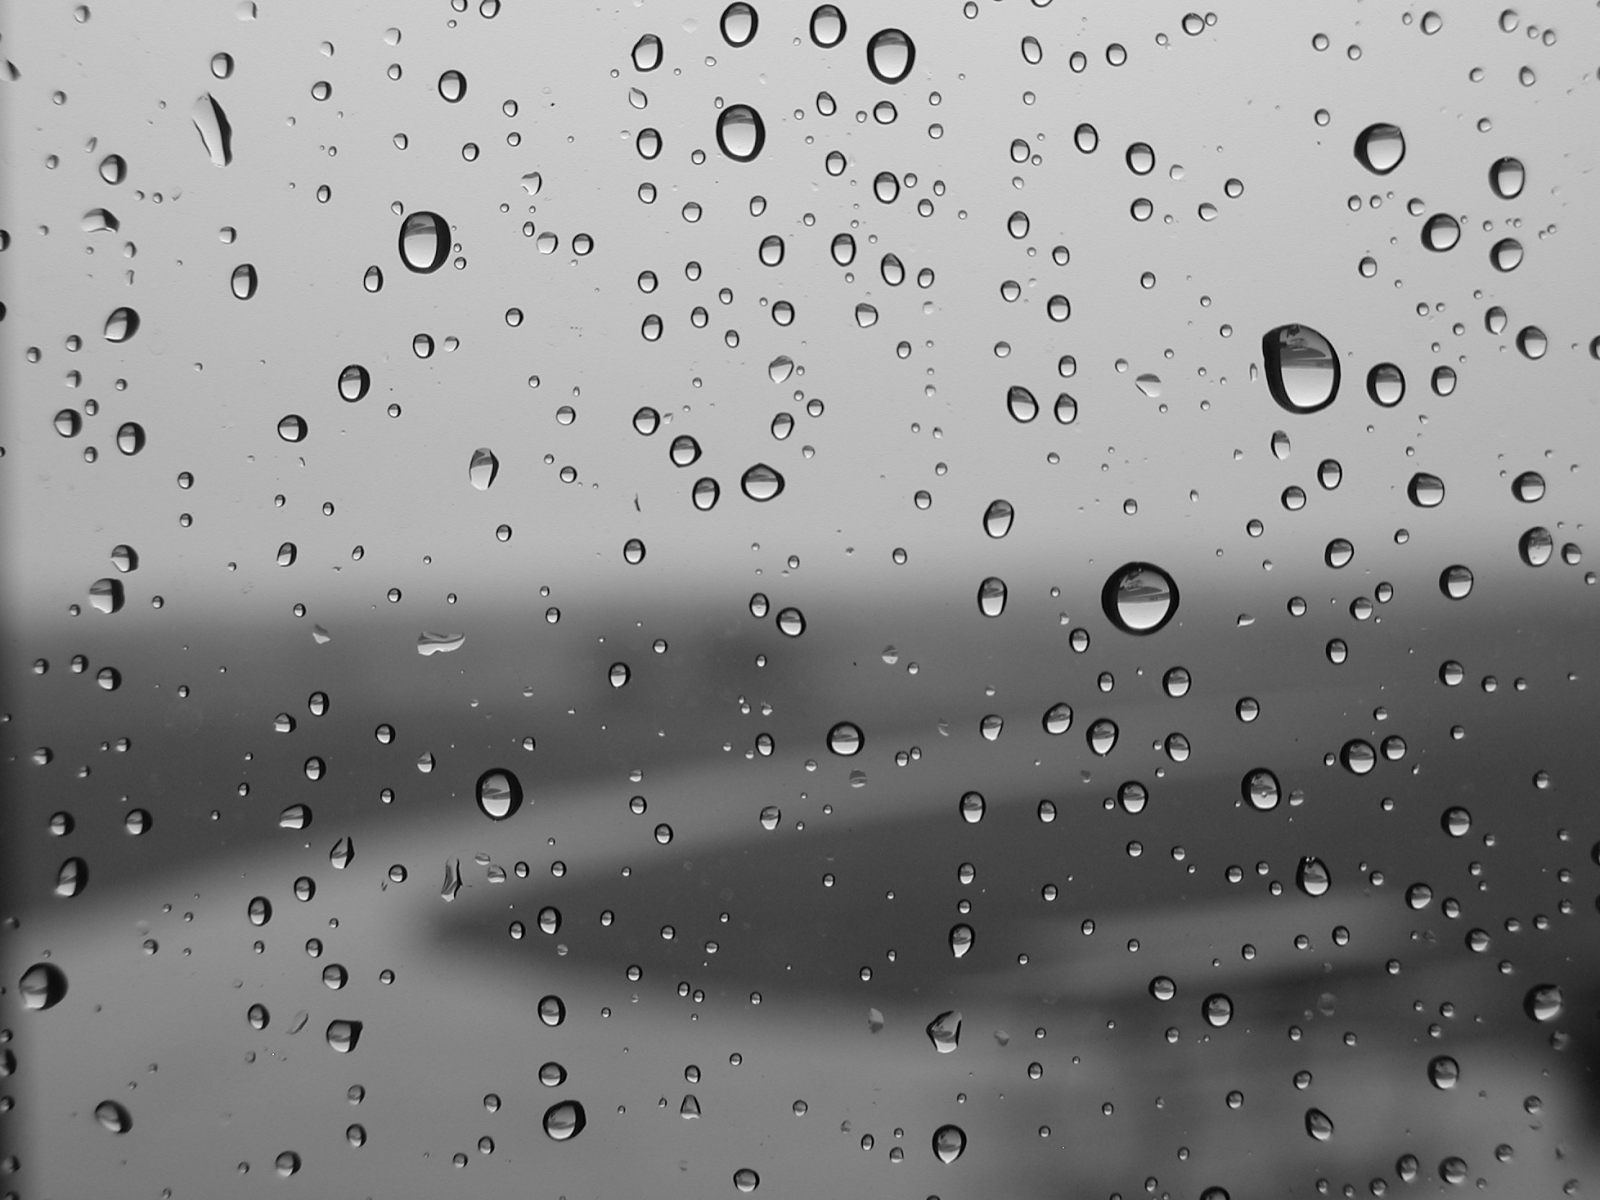 water, wet, water drops, condensation, rain on glass :: Wallpapers